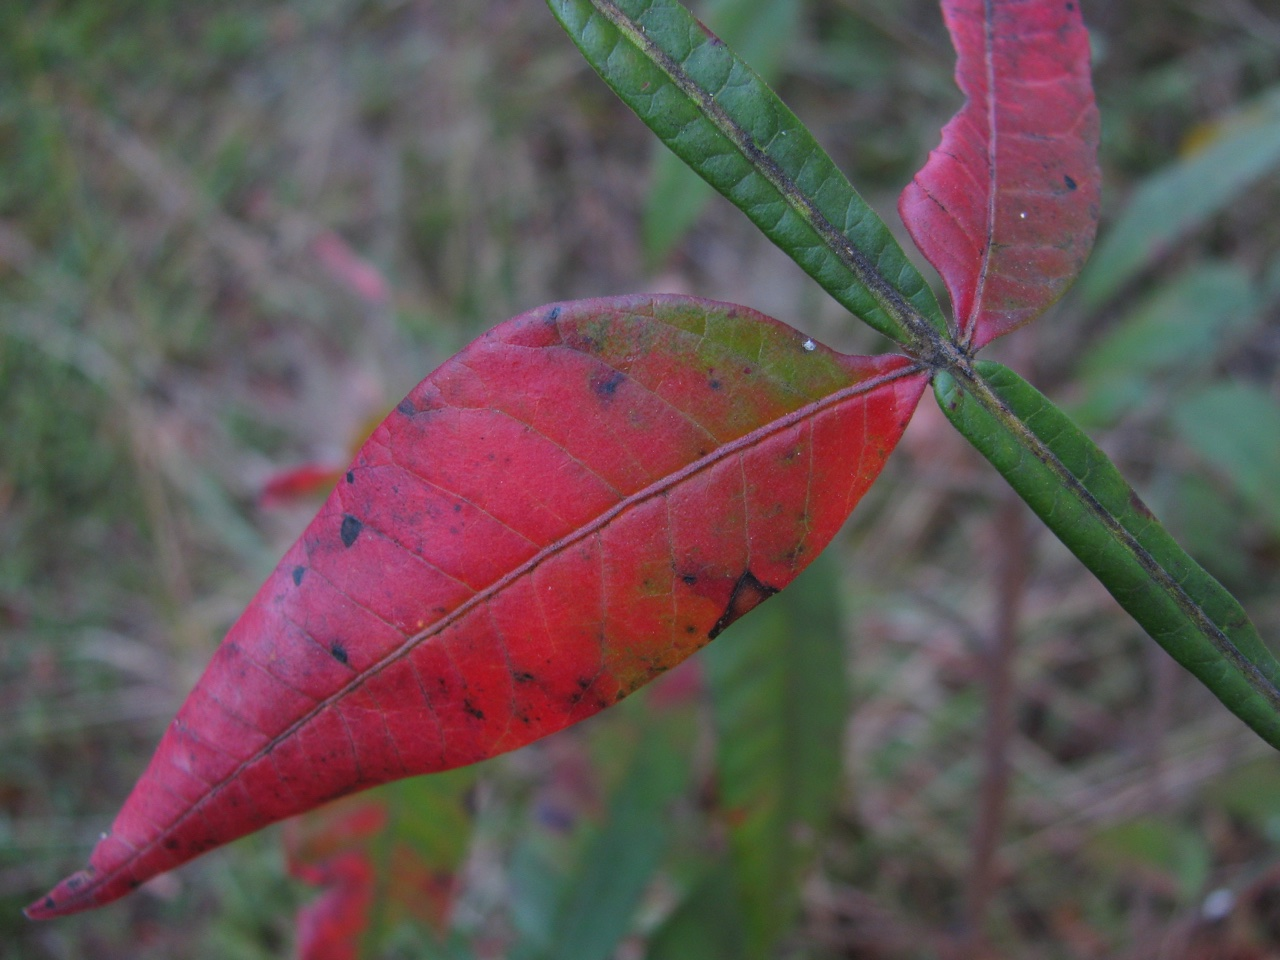 The Scientific Name is Rhus copallinum [= Rhus copallina]. You will likely hear them called Winged Sumac, Shining Sumac, Flameleaf Sumac, Dwarf Sumac. This picture shows the Close-up of winged rachis (main leaf stem of compound leaf) of Rhus copallinum [= Rhus copallina]